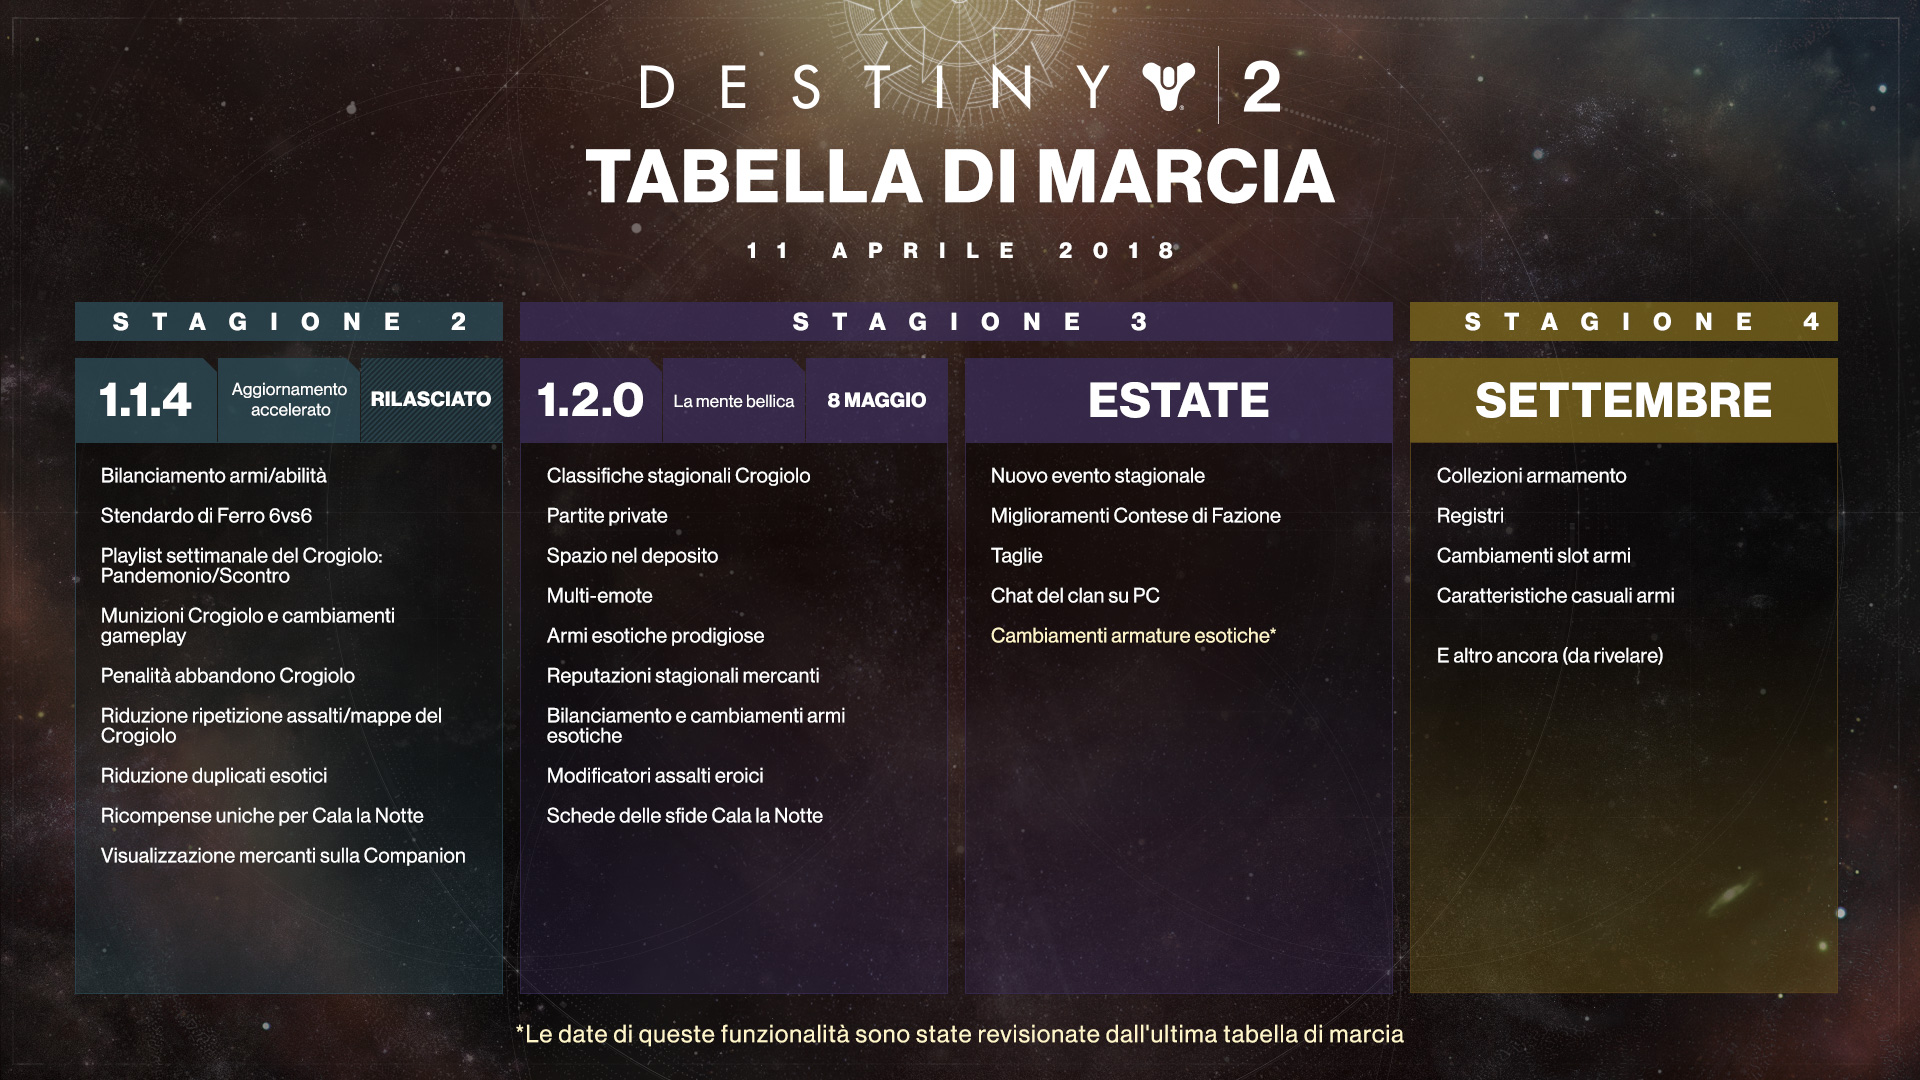 https://www.bungie.net/pubassets/110170/dev_roadmap_IT.jpg?cv=3983621215&av=1151964485